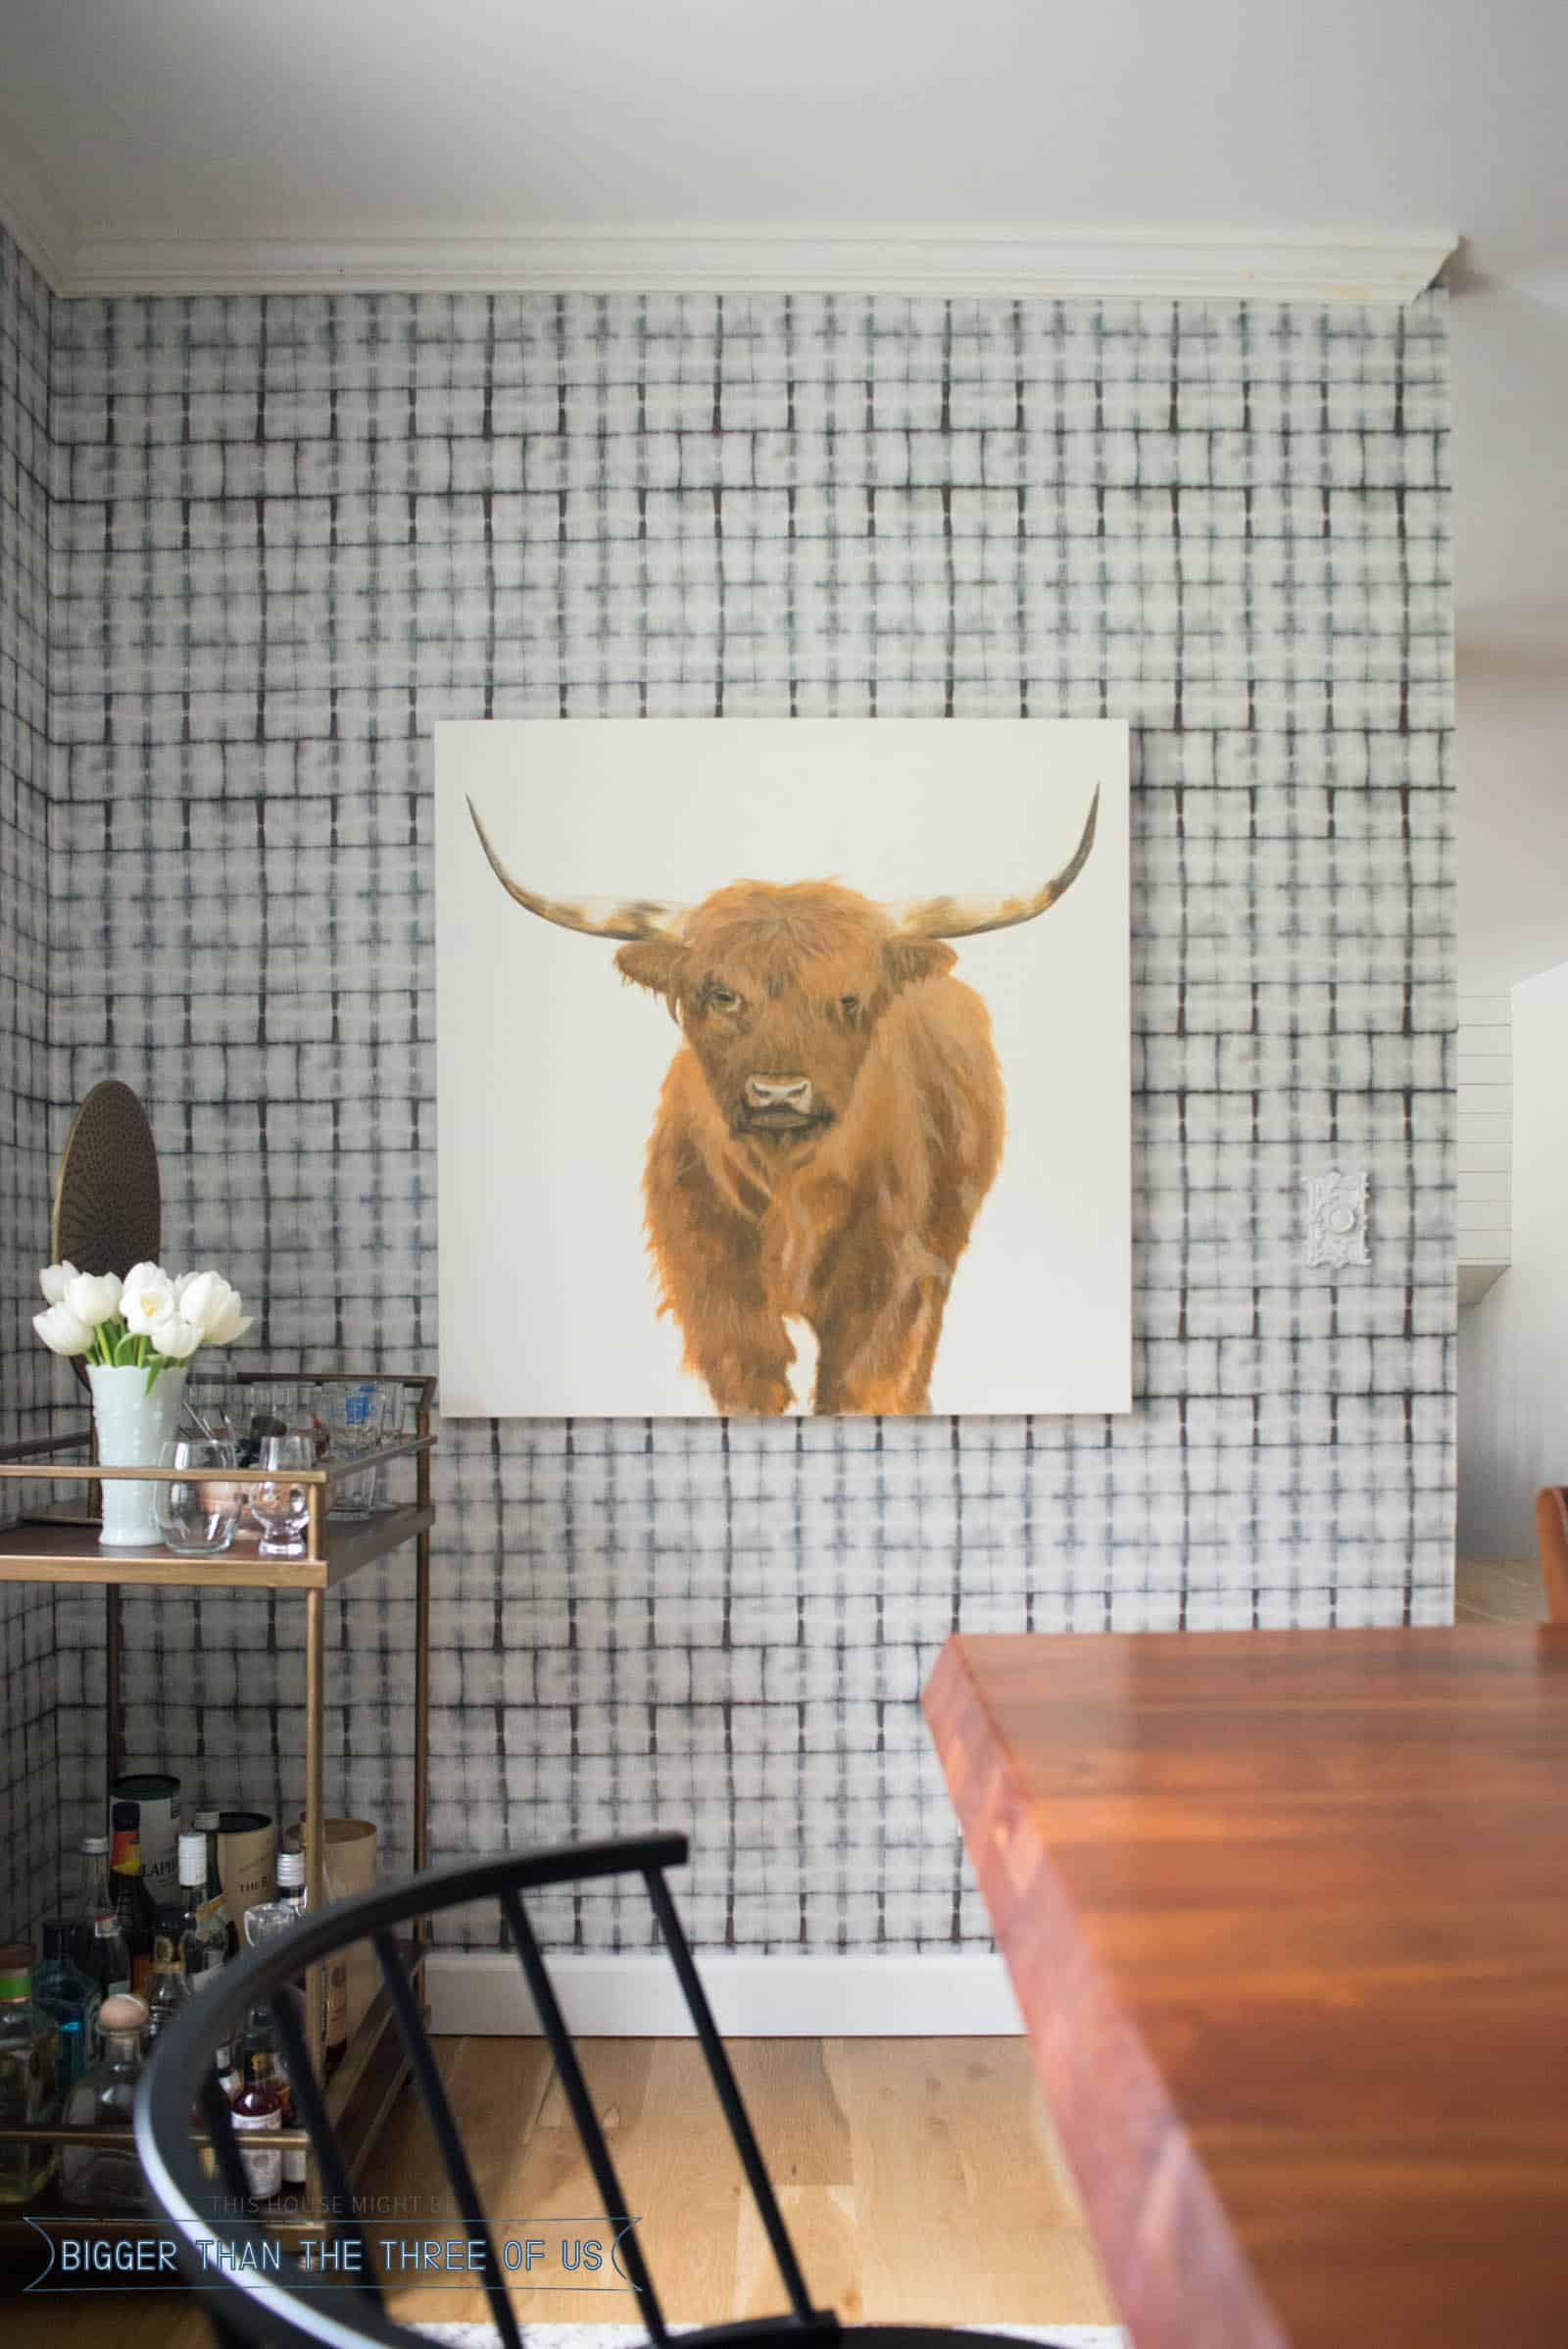 HIghland Cow Painting with a barcart in modern dining room